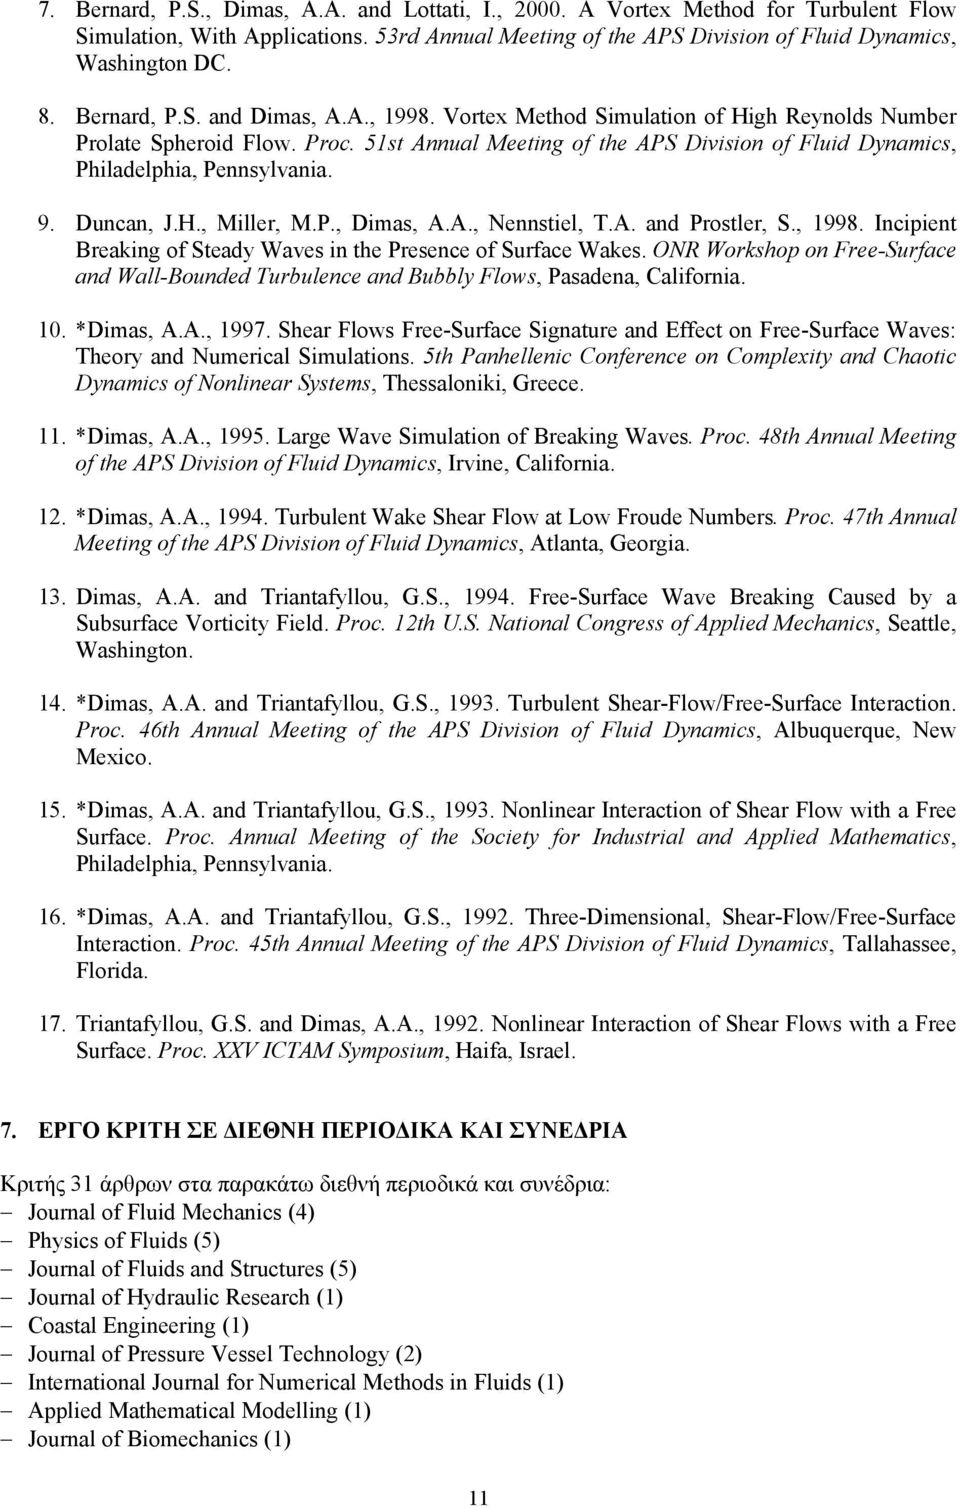 51st Annual Meeting of the APS Division of Fluid Dynamics, Philadelphia, Pennsylvania. 9. Duncan, J.H., Miller, M.P., Dimas, A.A., Nennstiel, T.A. and Prostler, S., 1998.